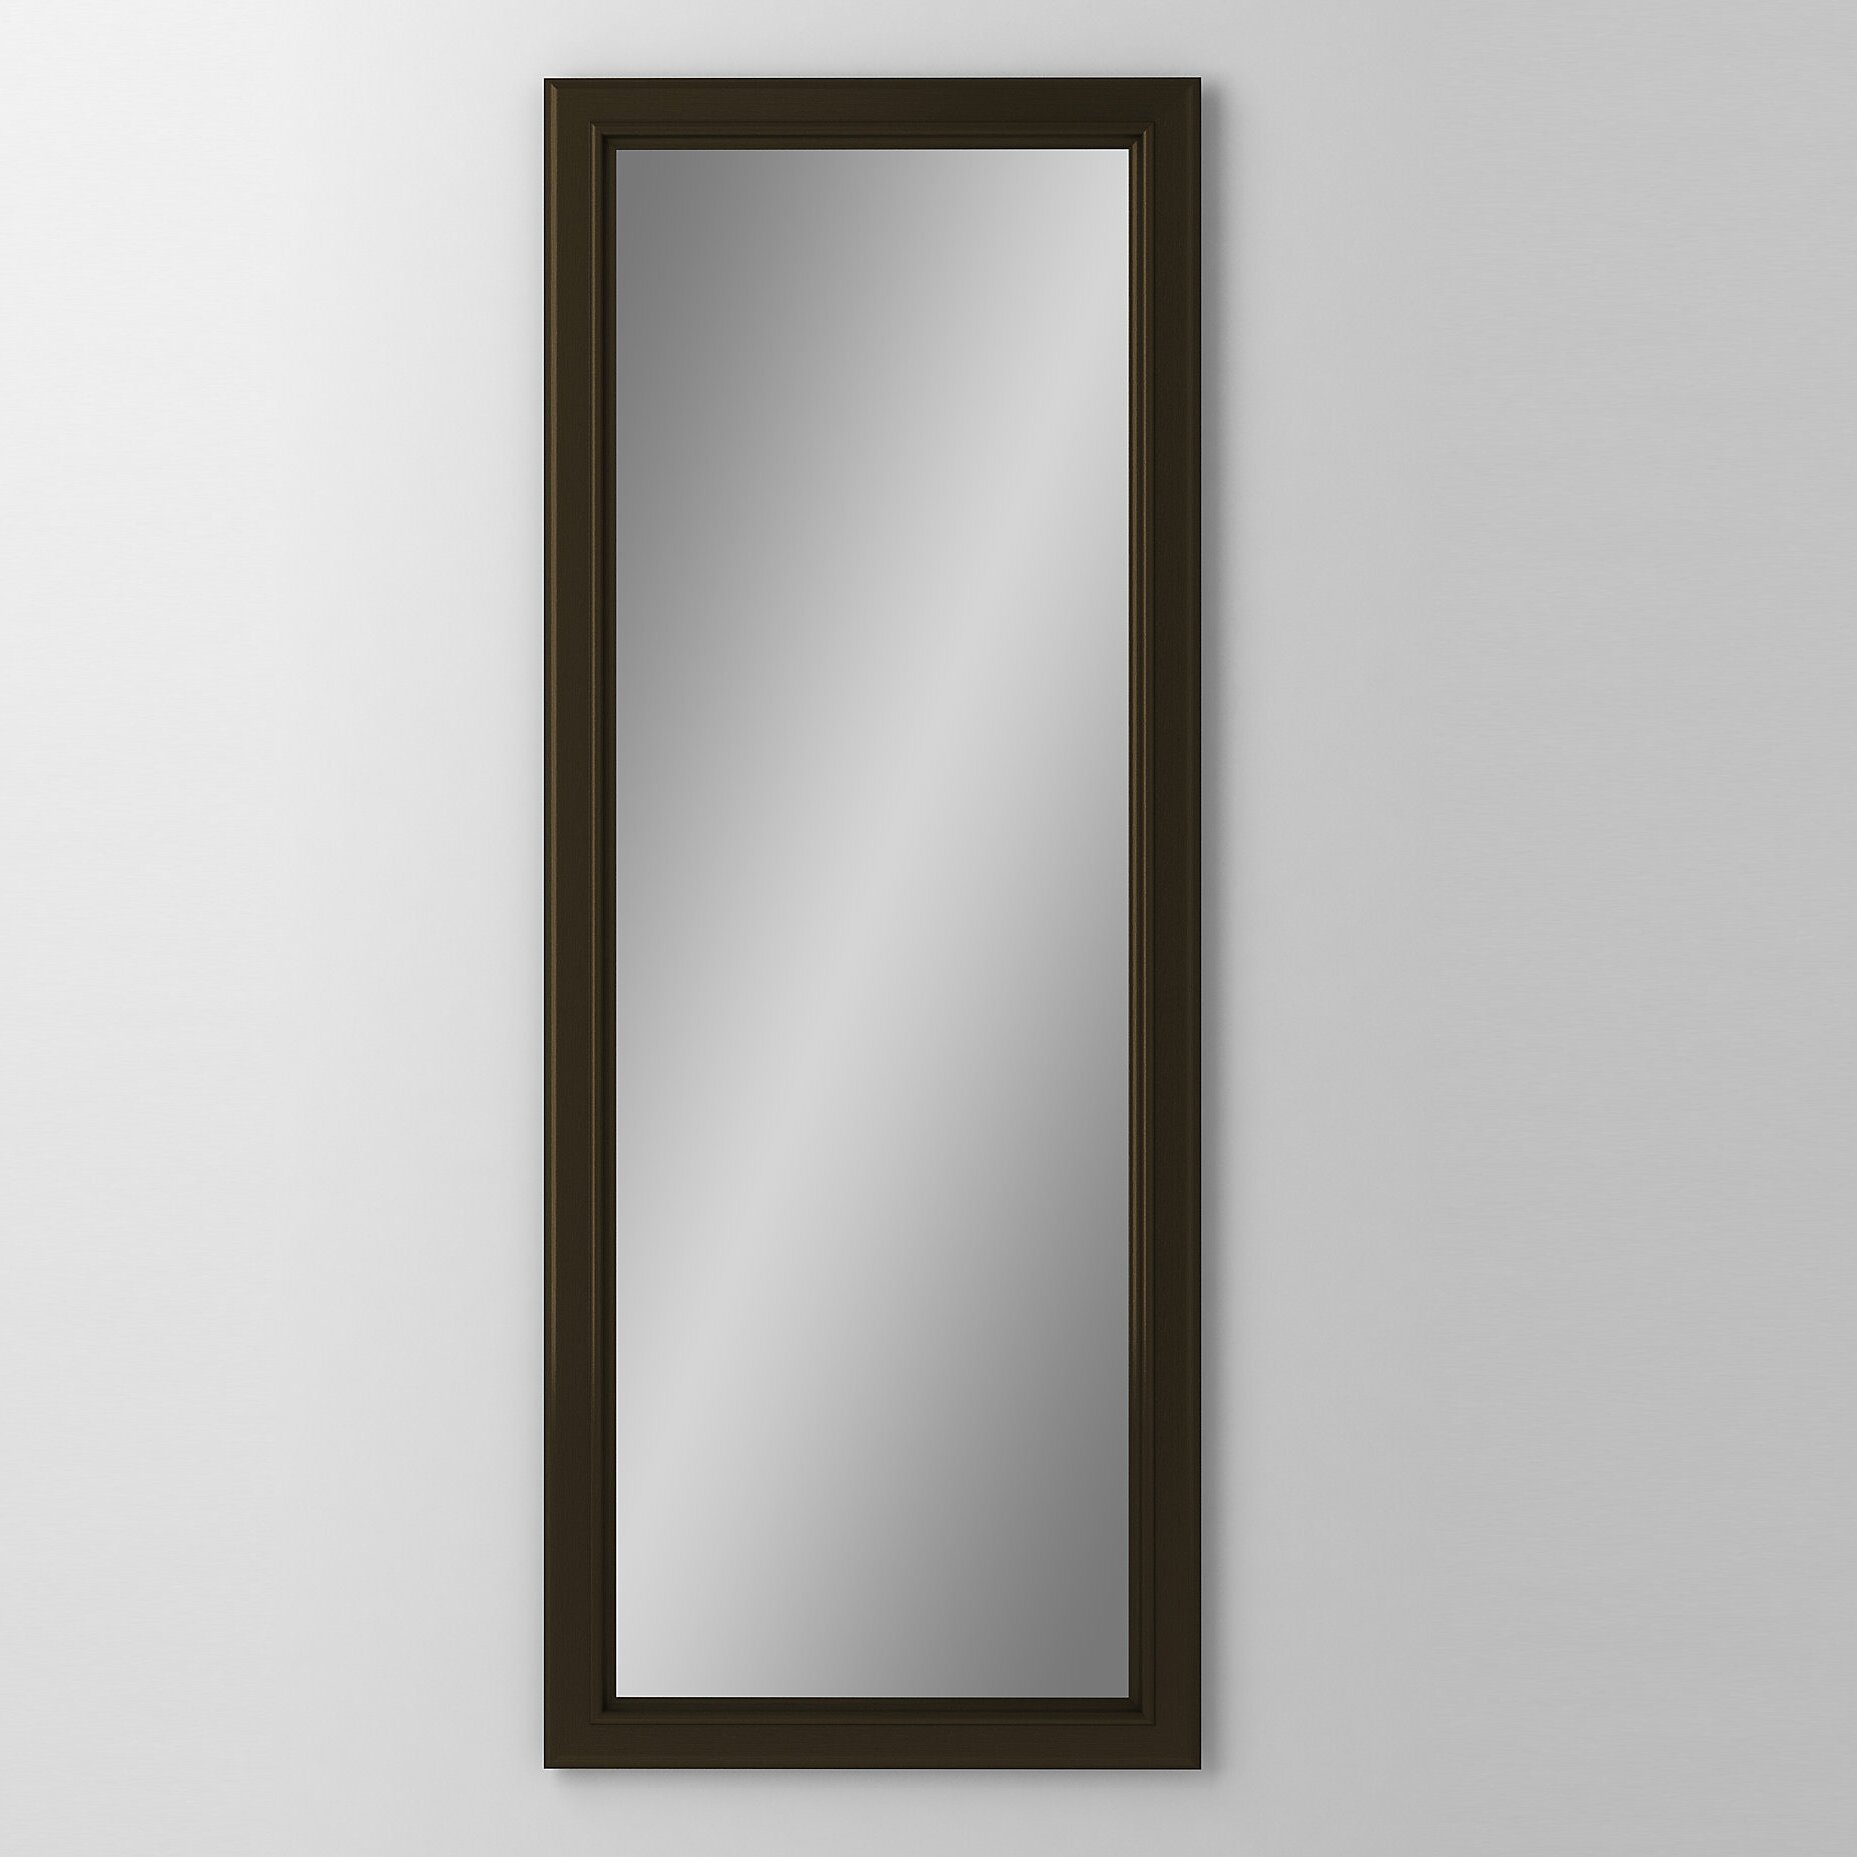 robern main line 15 25 quot x 39 38 quot mirrored recessed medicine cabinet - Robern Medicine Cabinet